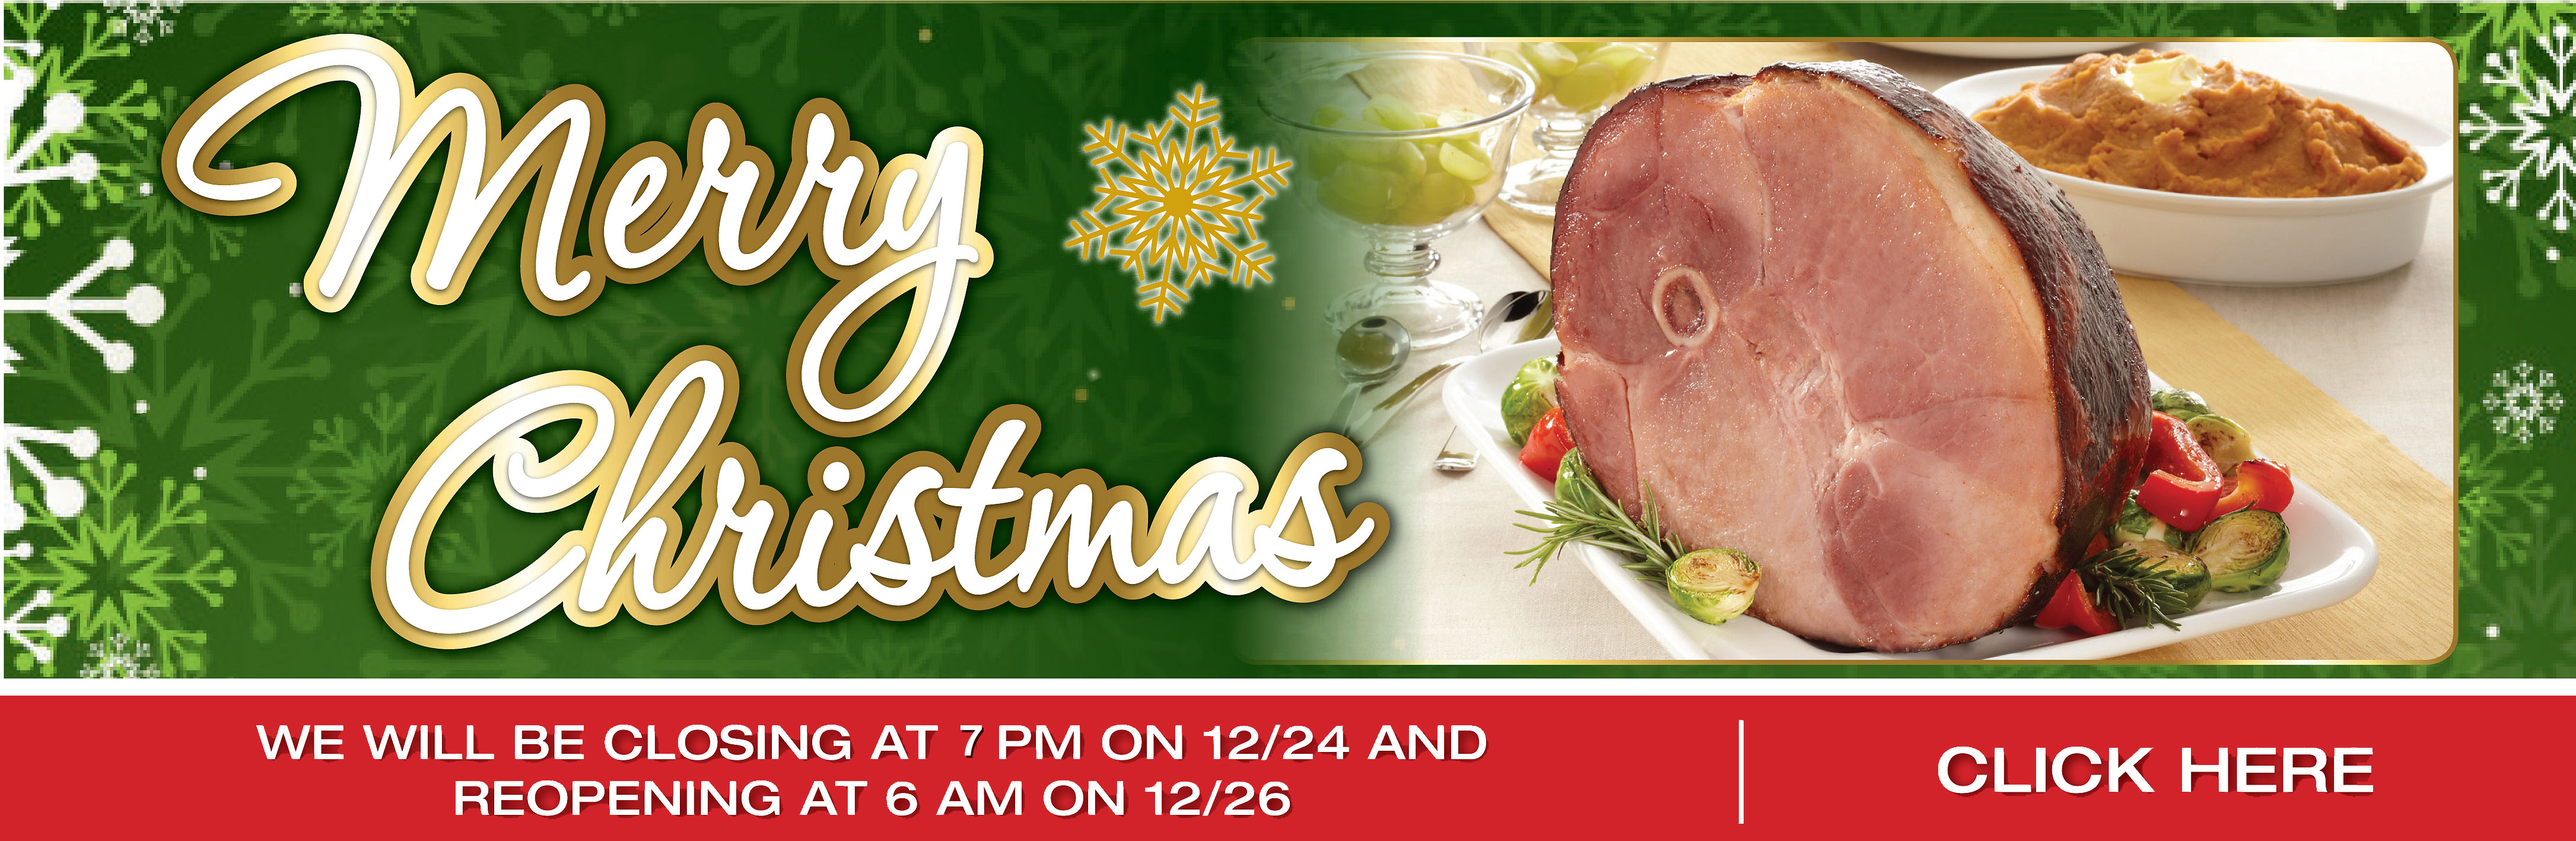 Merry Christmas To Your Family From TOPS